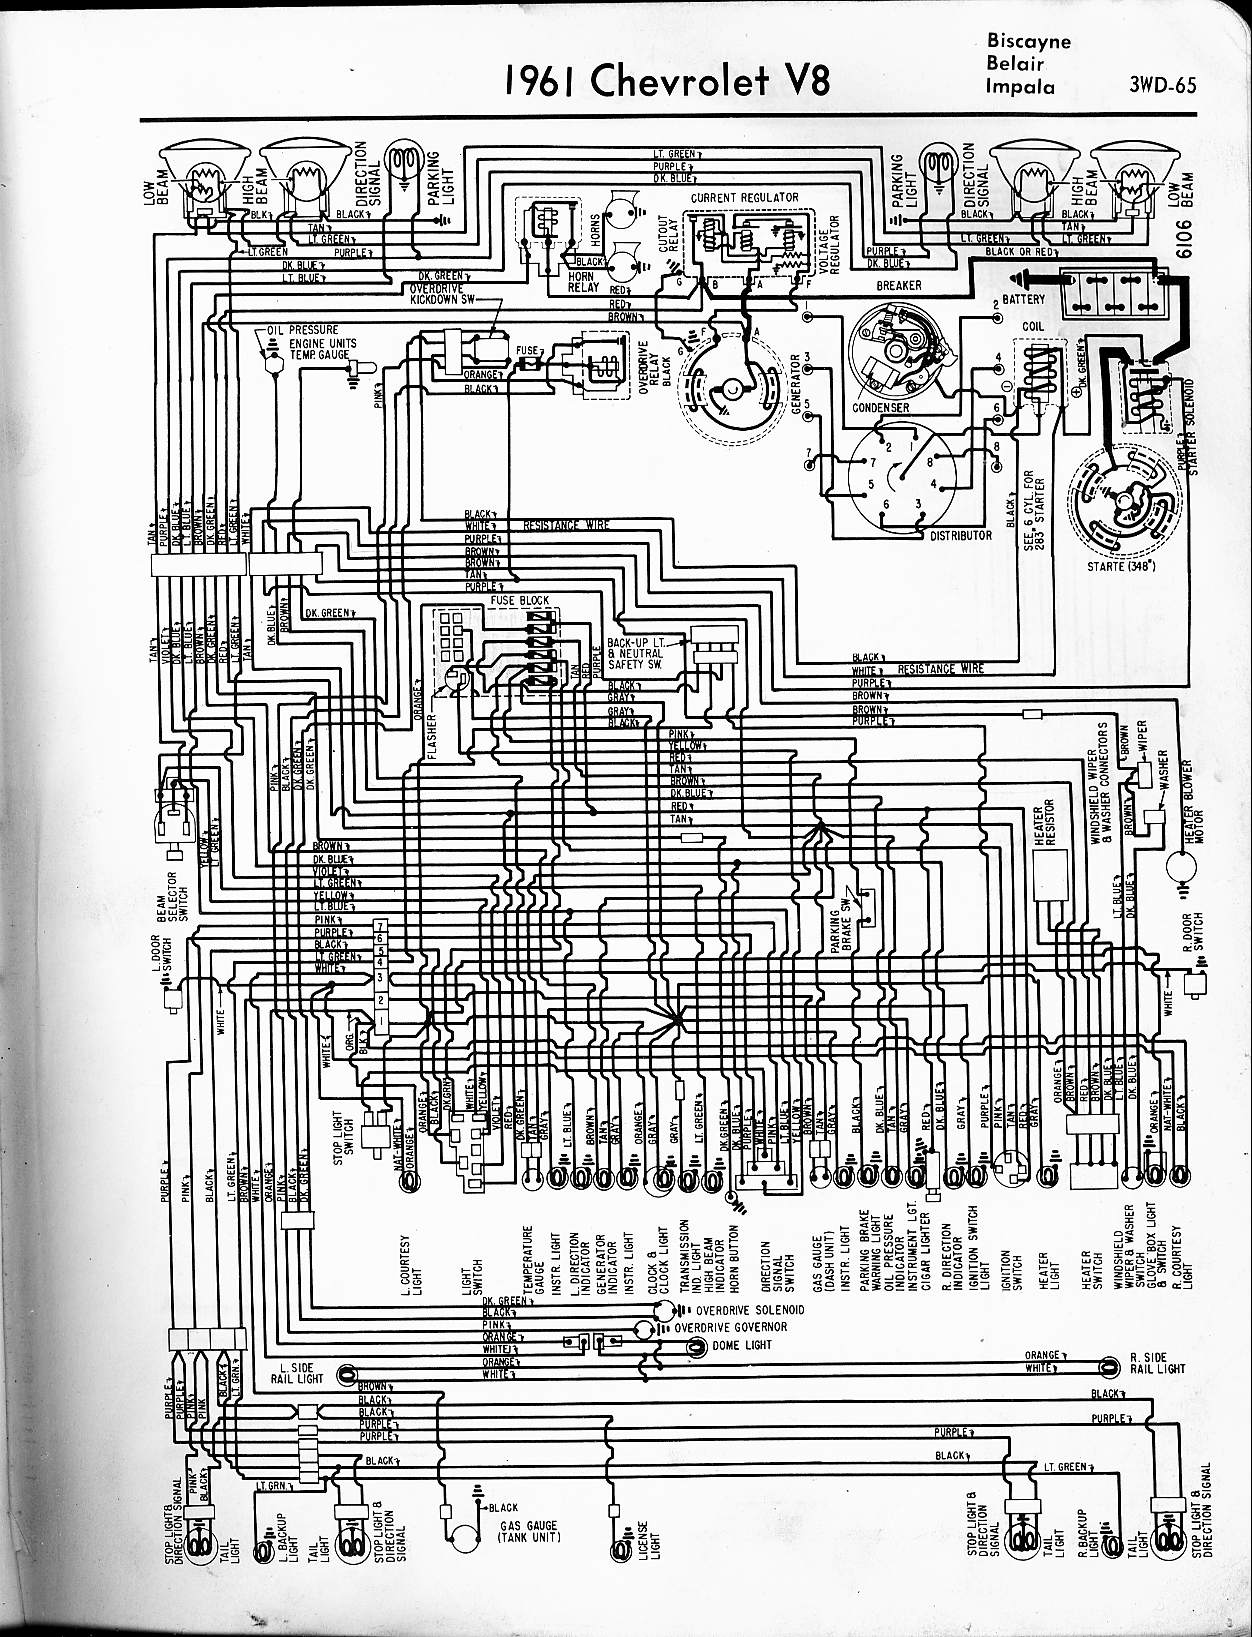 1964 chevy nova wiring diagram single phase motor with capacitor besides gm steering column 96